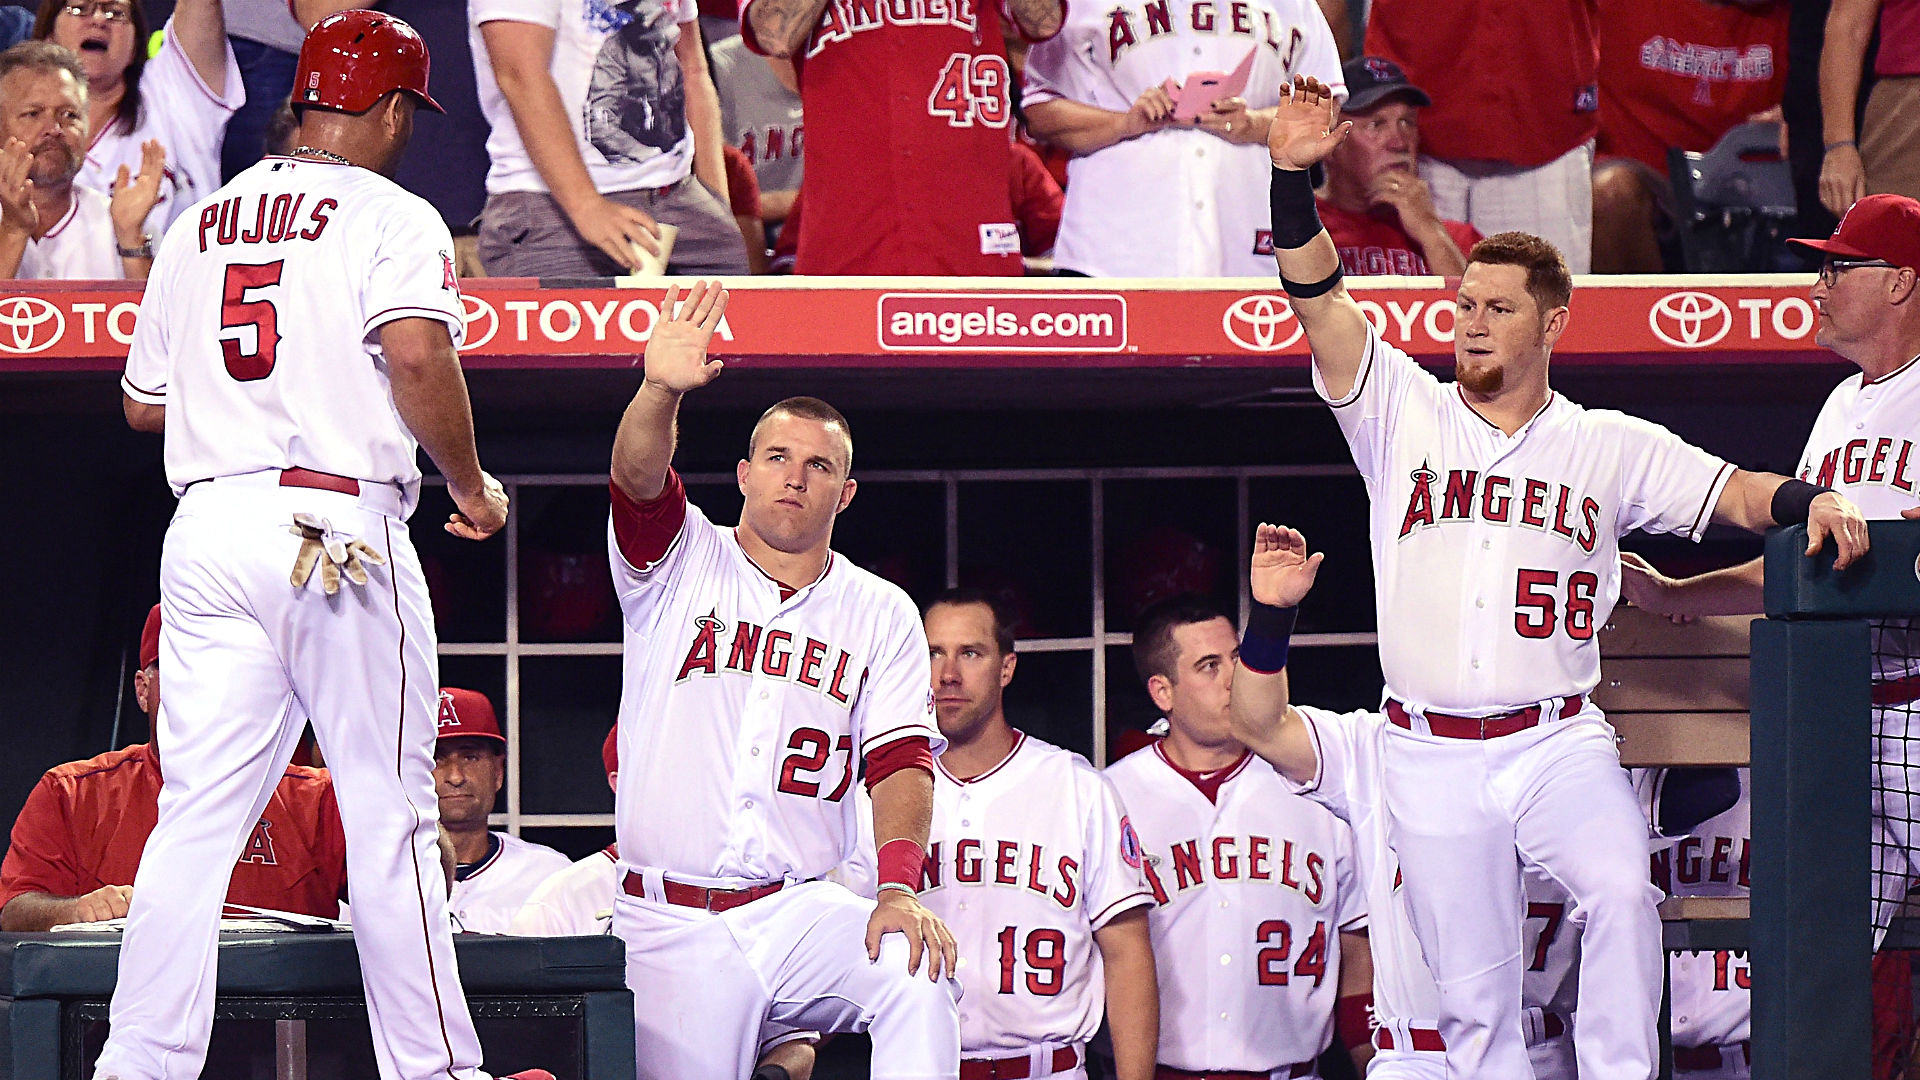 The Angels' Mike Trout, Kole Calhoun celebrate with Albert Pujols